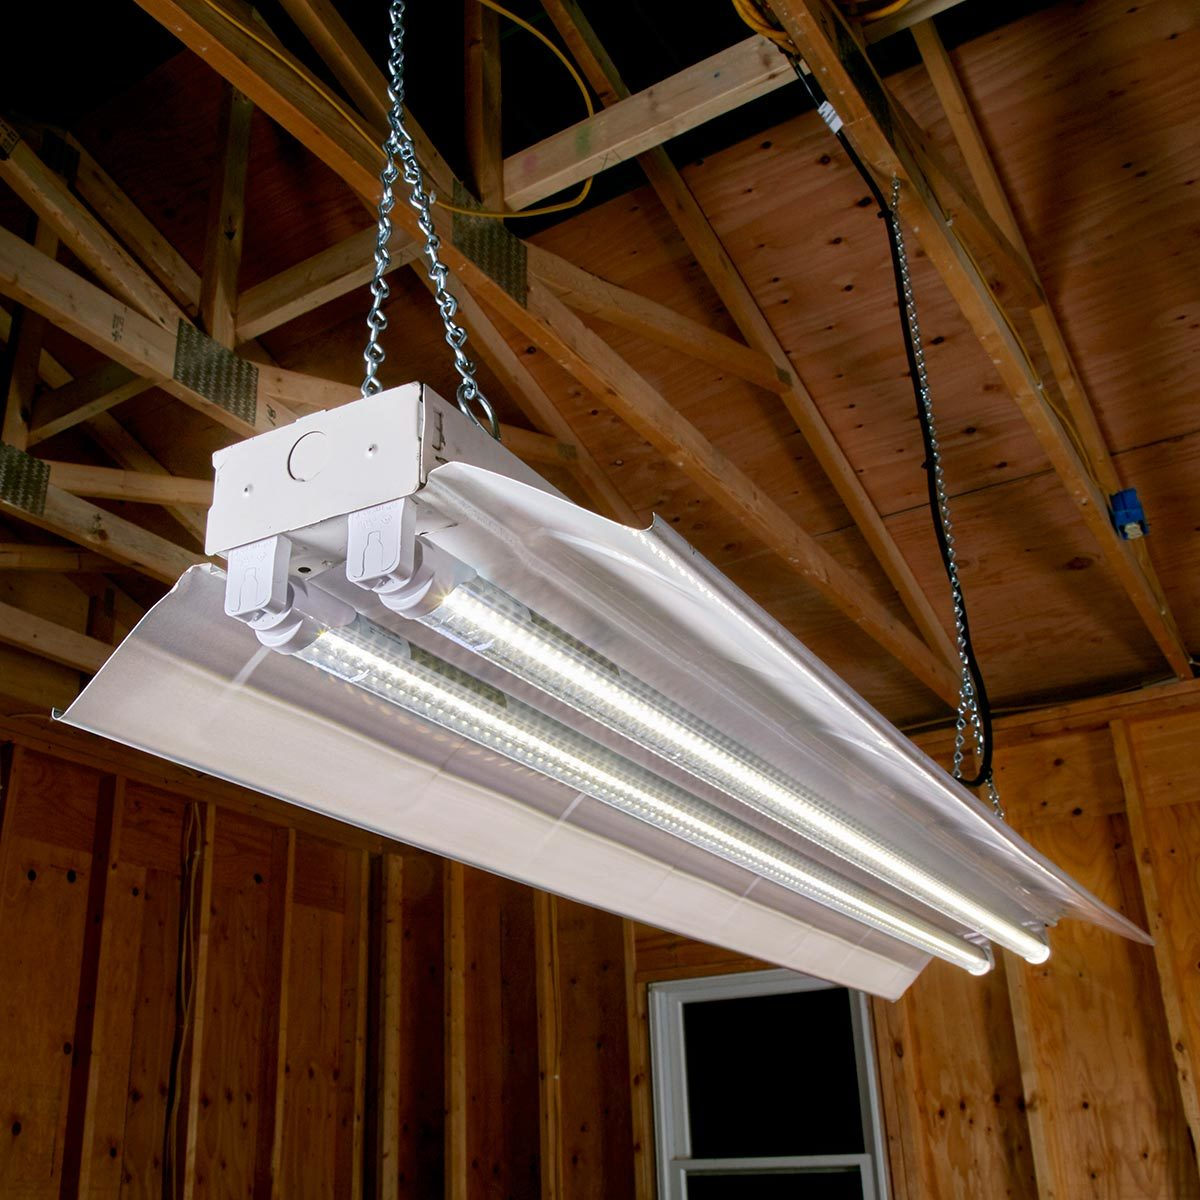 traditional fluorescent shop light fixtures are designed to accommodate  4-ft fluorescent tubes, which, compared to incandescent bulbs, provided  longer